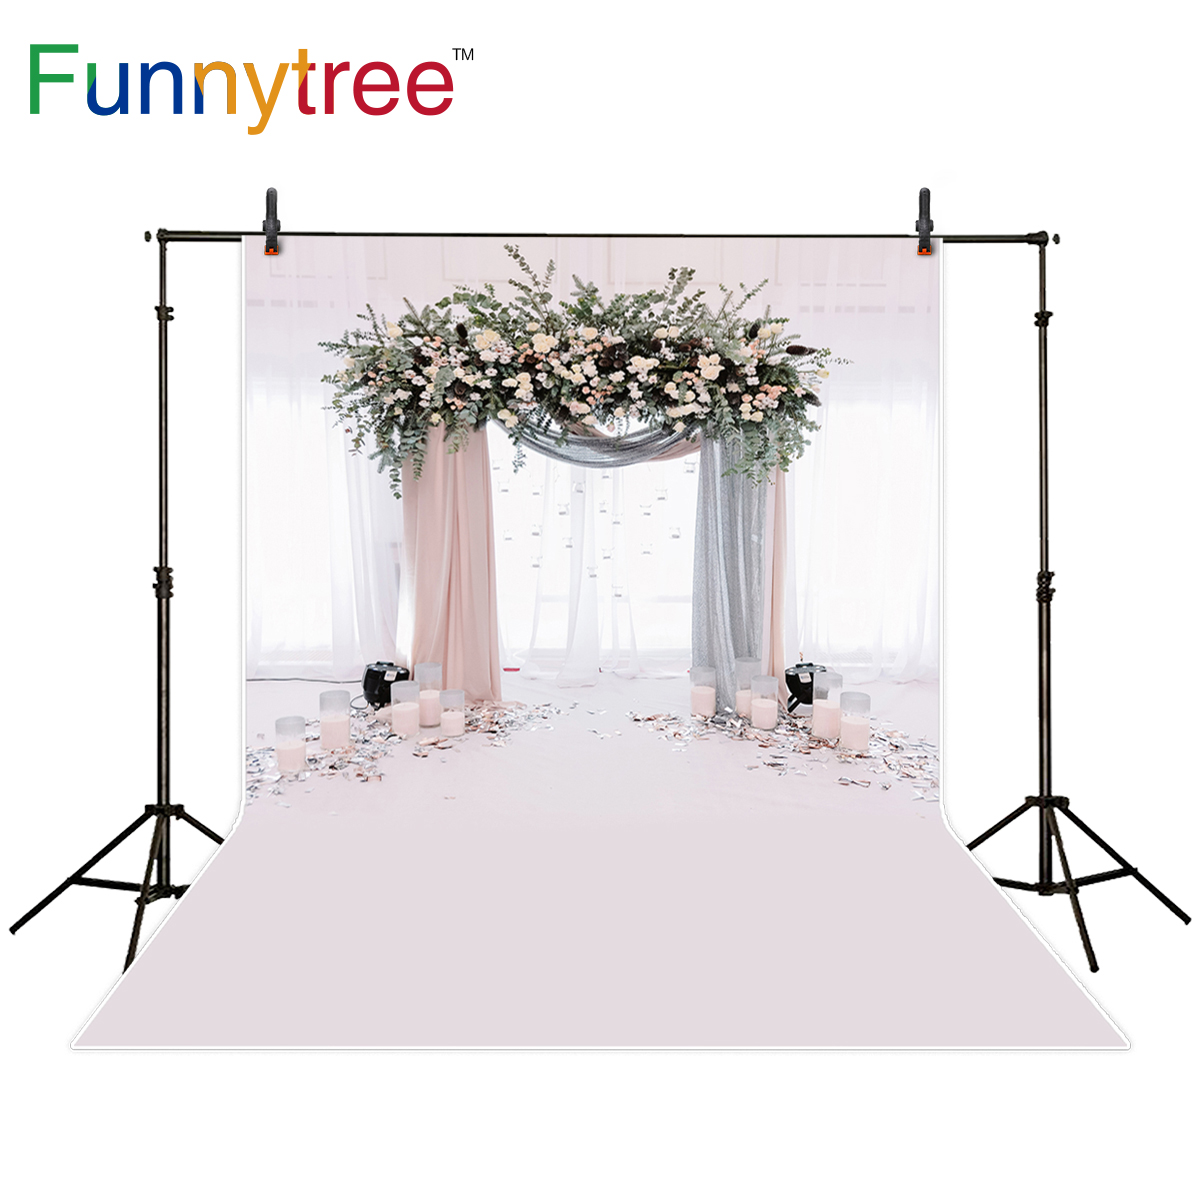 Funnytree photo background wedding flower door indoor sweet romantic backdrop photocall photography photo shoot photobooth allenjoy photography backdrop flower door wedding children painting colorful background photo studio photocall photo shoot